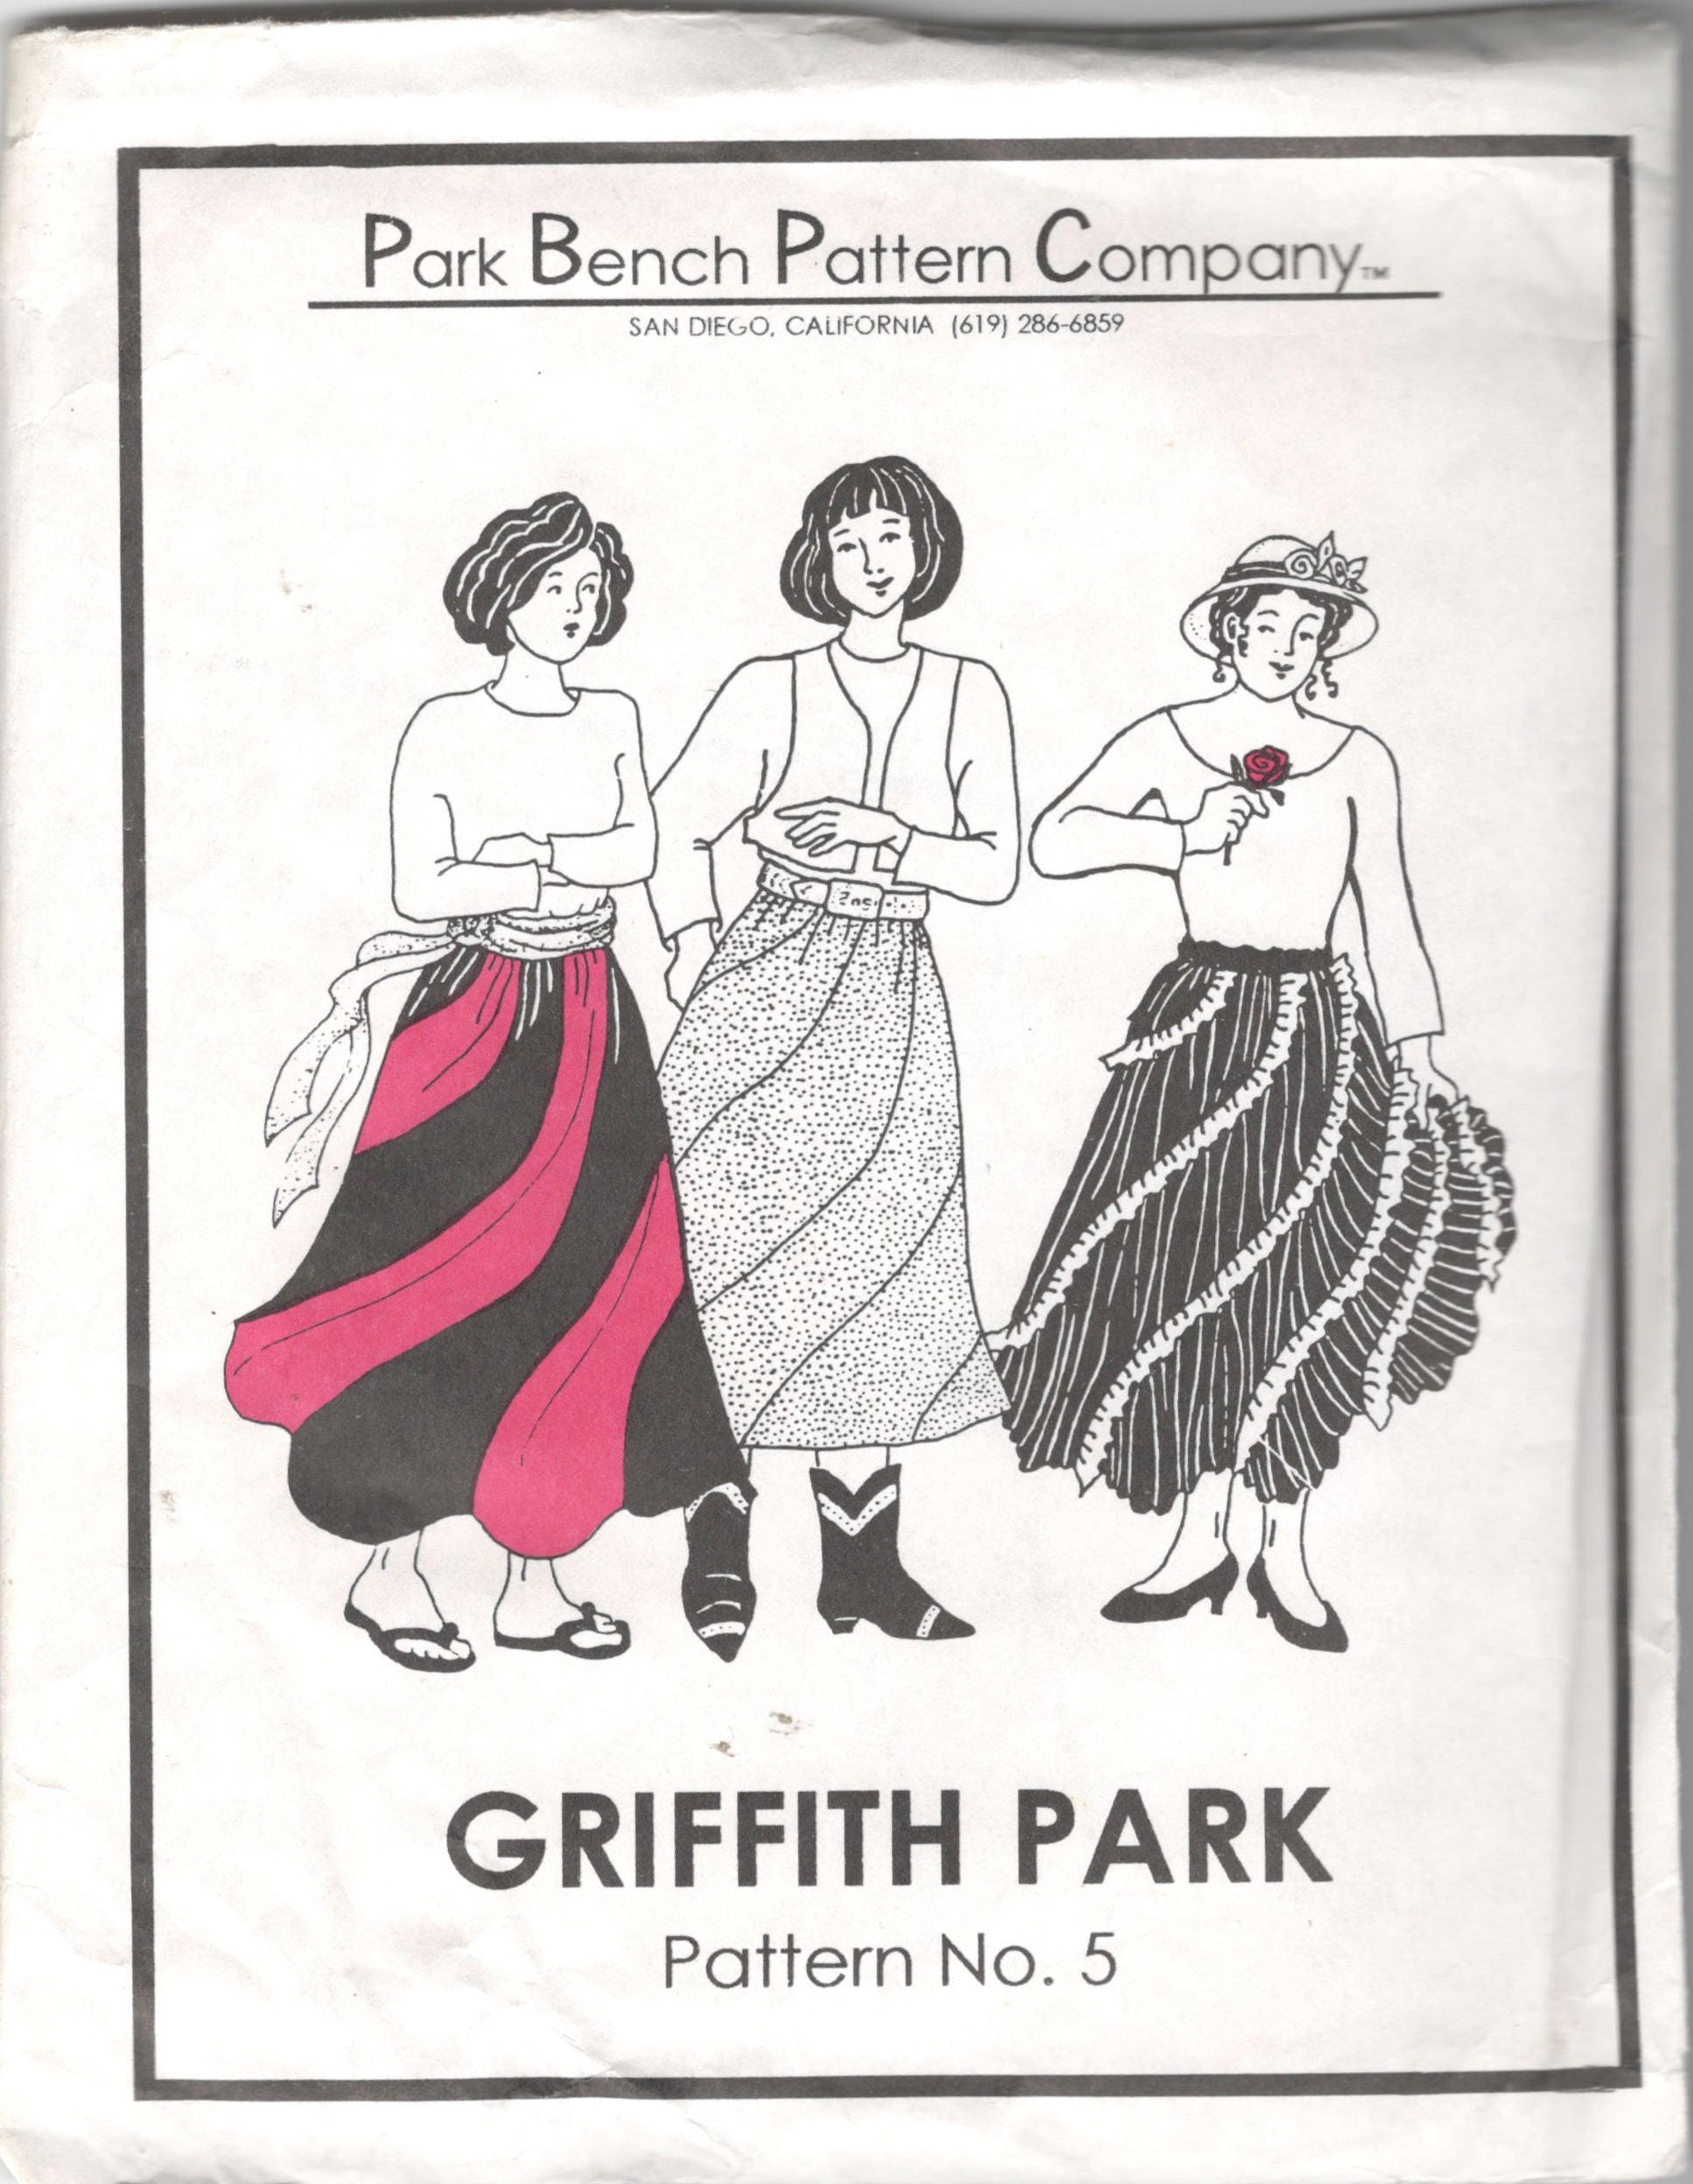 Park Bench Pattern Company 5 Griffith Park Swirl Skirt Simply Etsy